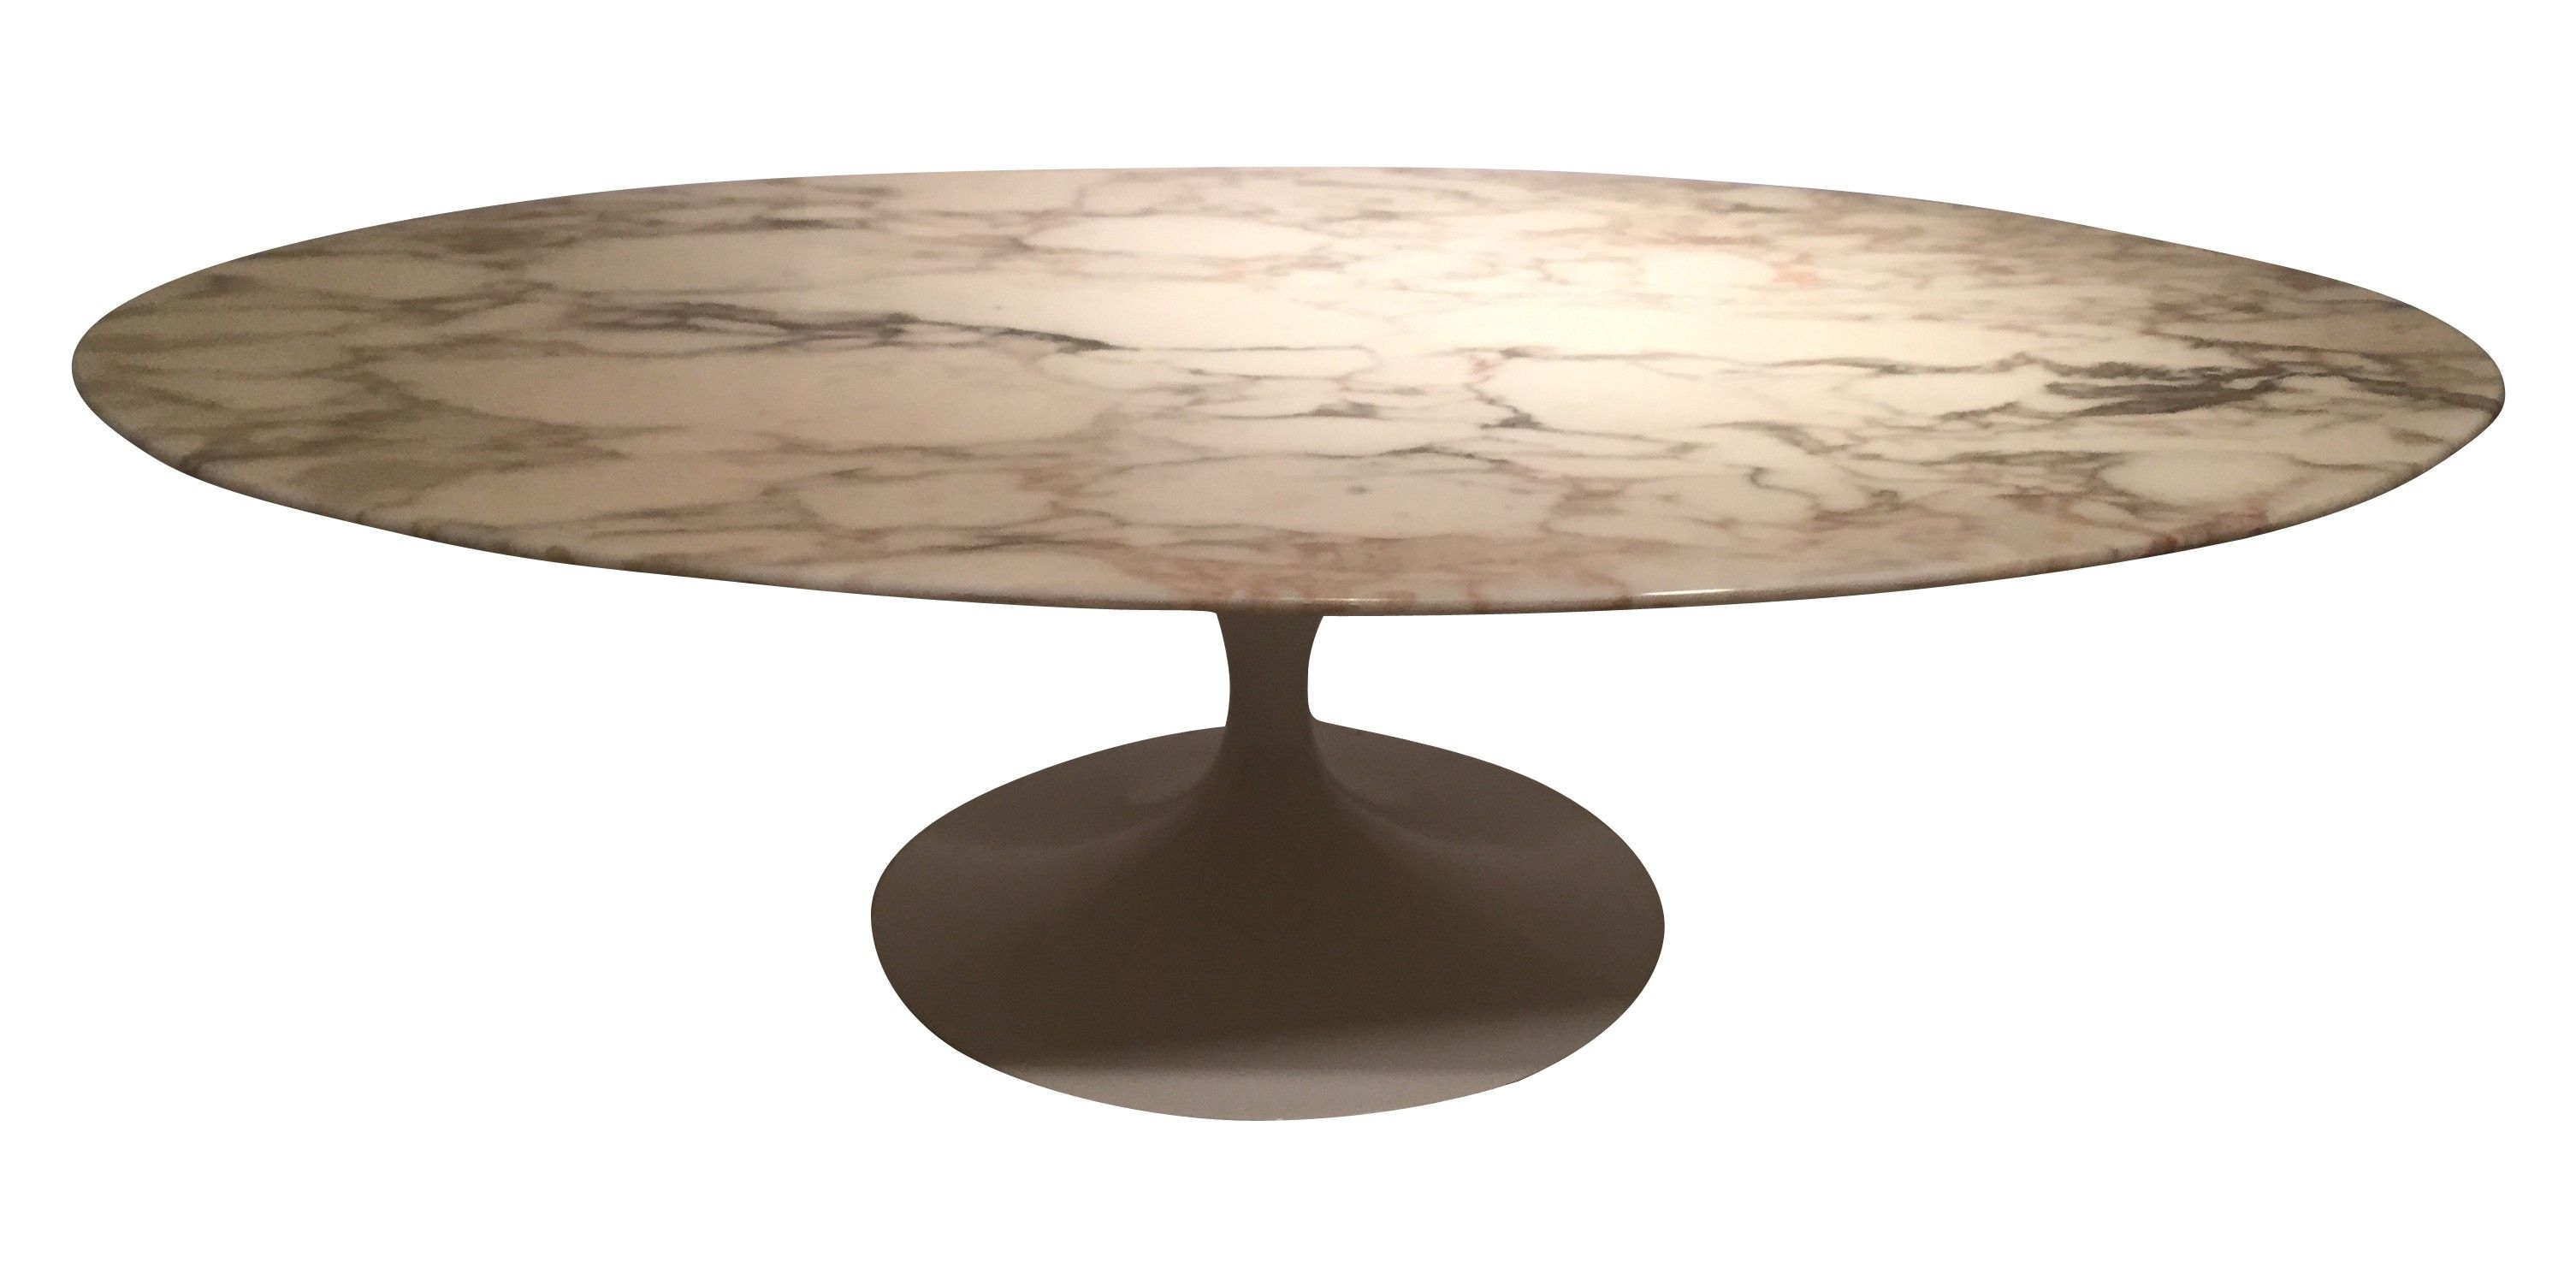 Grande table basse ovale en marbre eero saarinen ann es 70 grandes tables basses tables - Set de table ovale ...